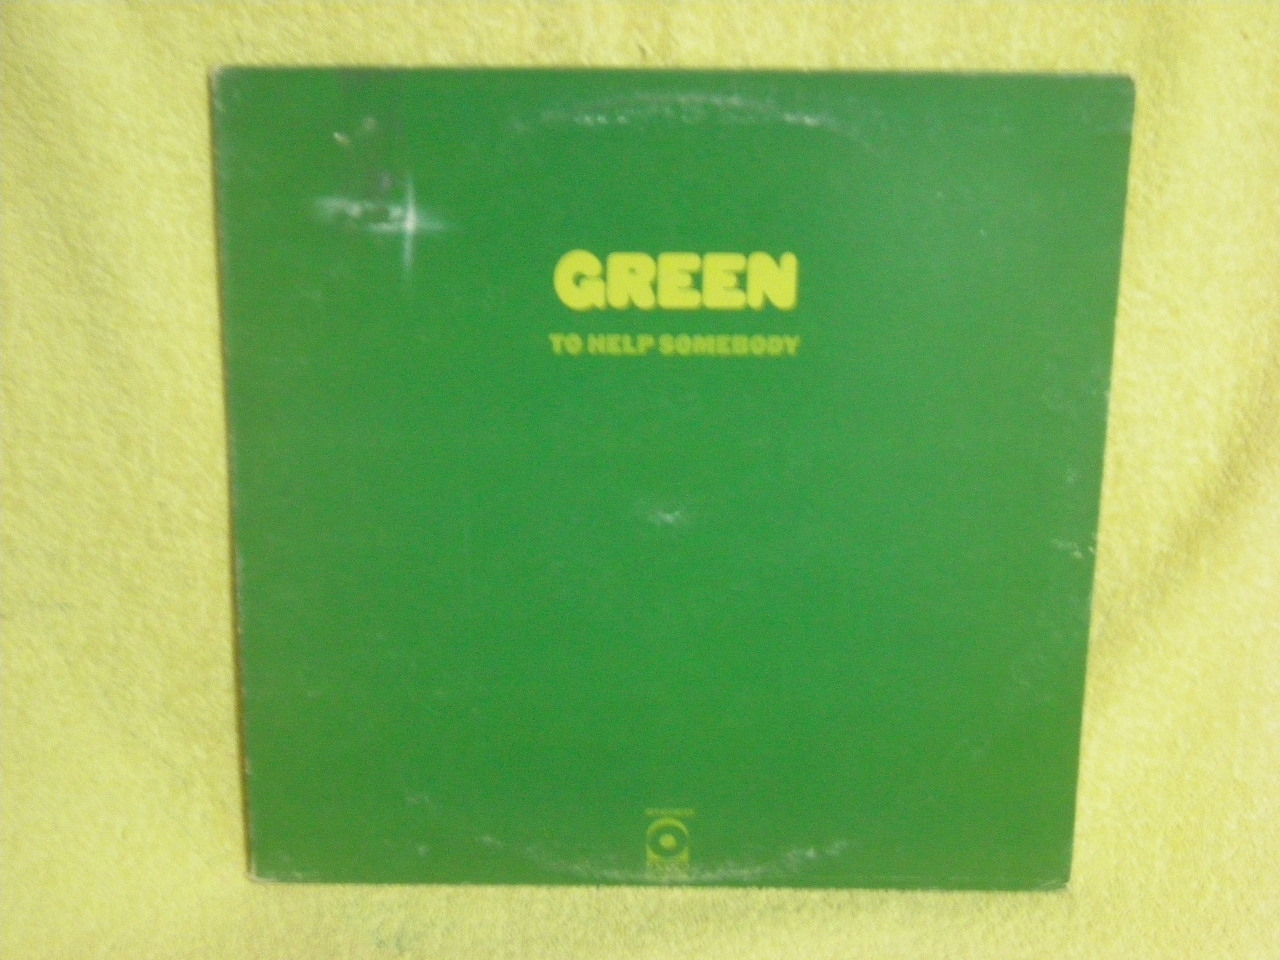 Green - To Help Somebody CD